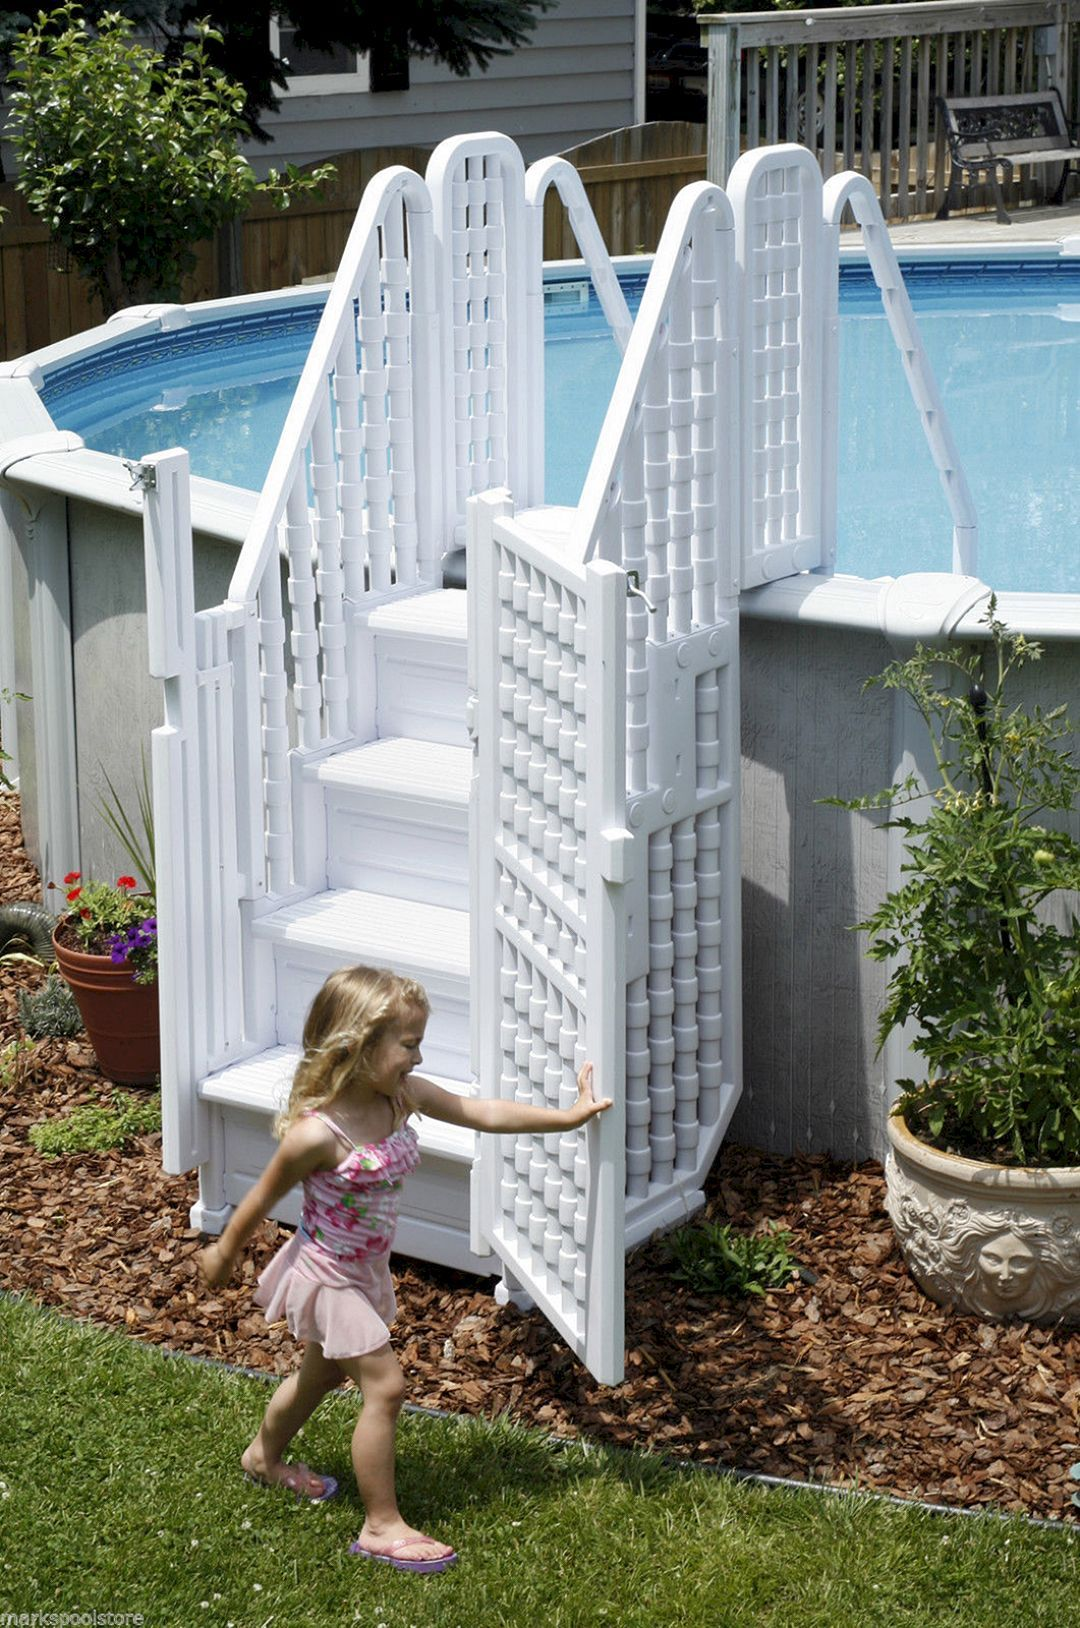 Top 52 diy above ground pool ideas on a budget above - Above ground pool ideas on a budget ...